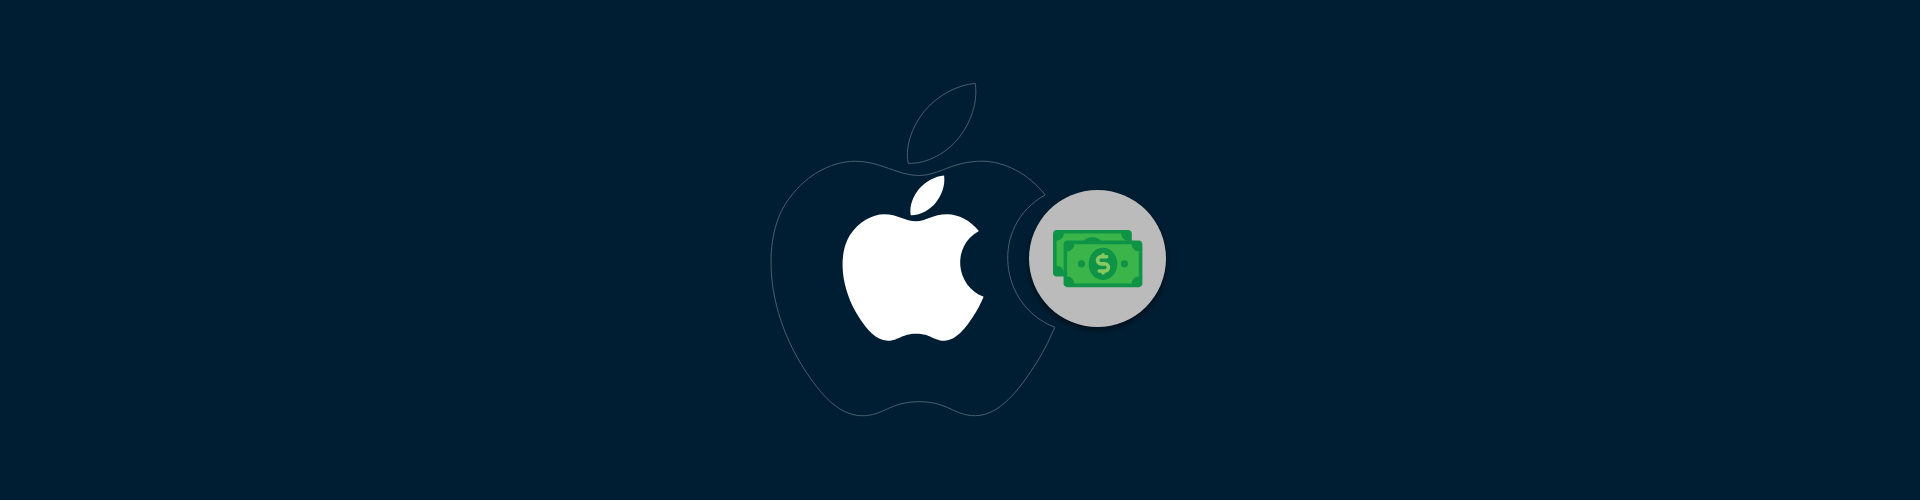 Header image of Apple Cuts Commission Fees